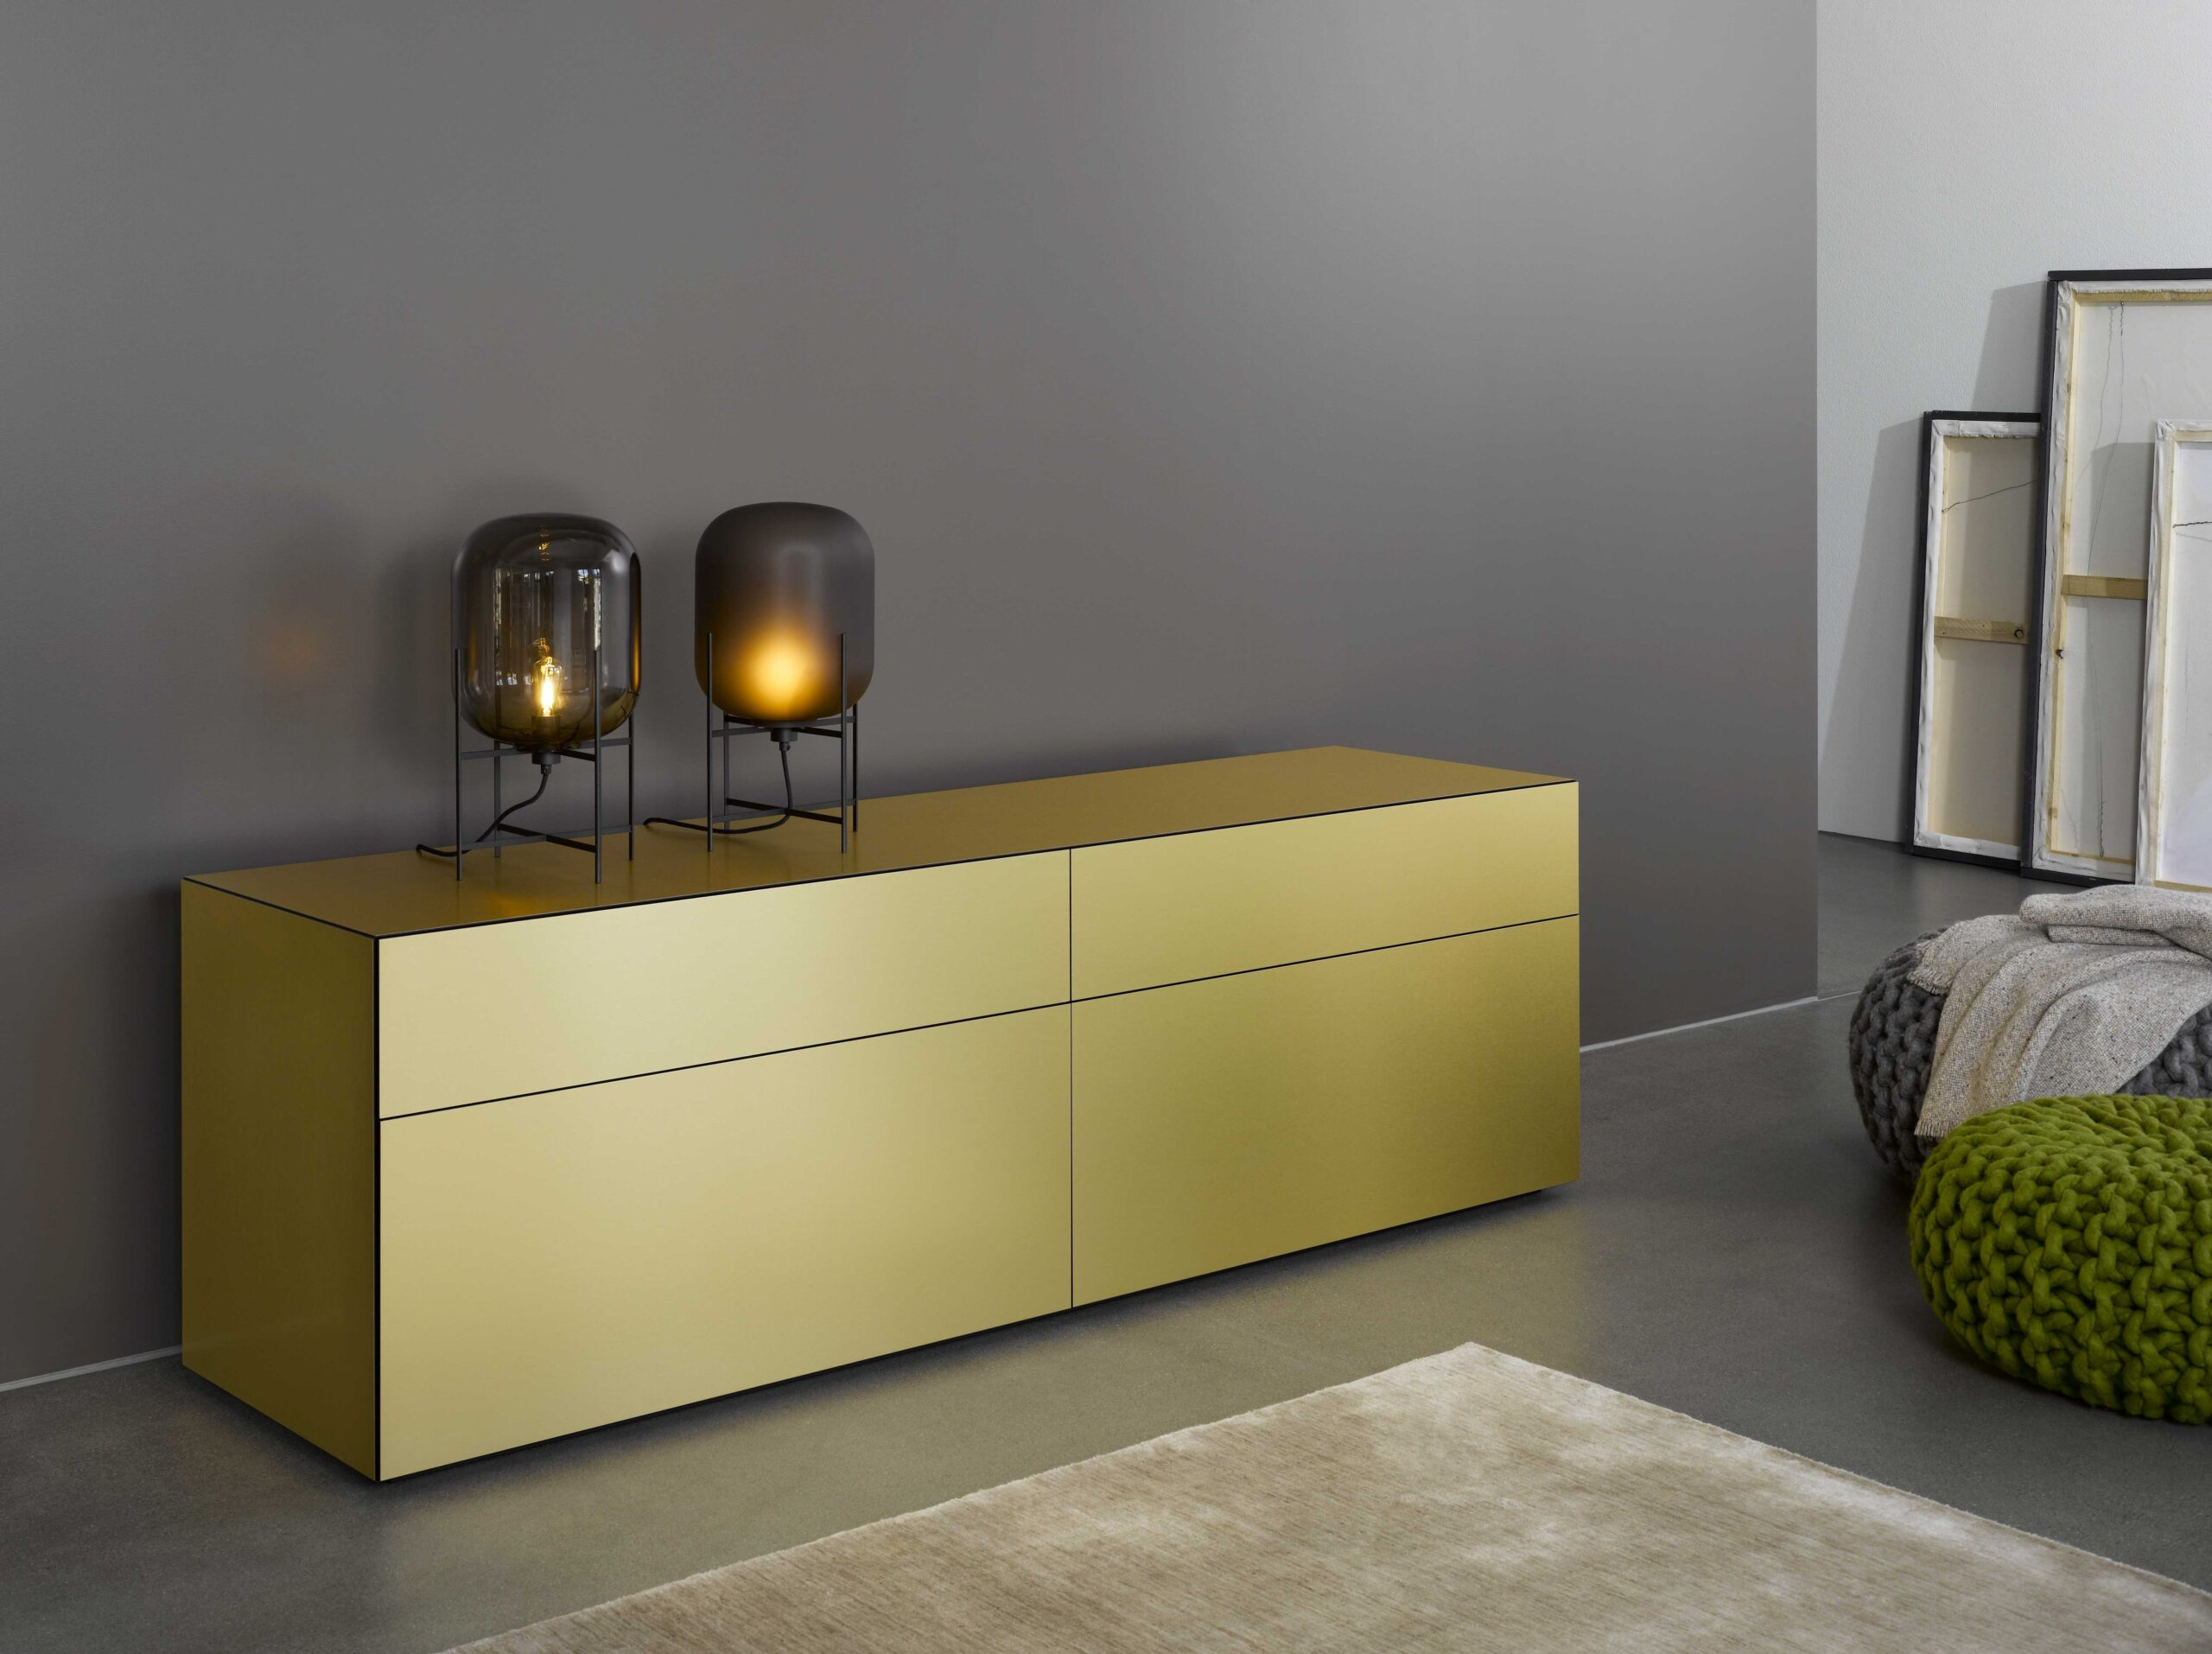 designer-sideboard-gold-vifian-pure-scaled